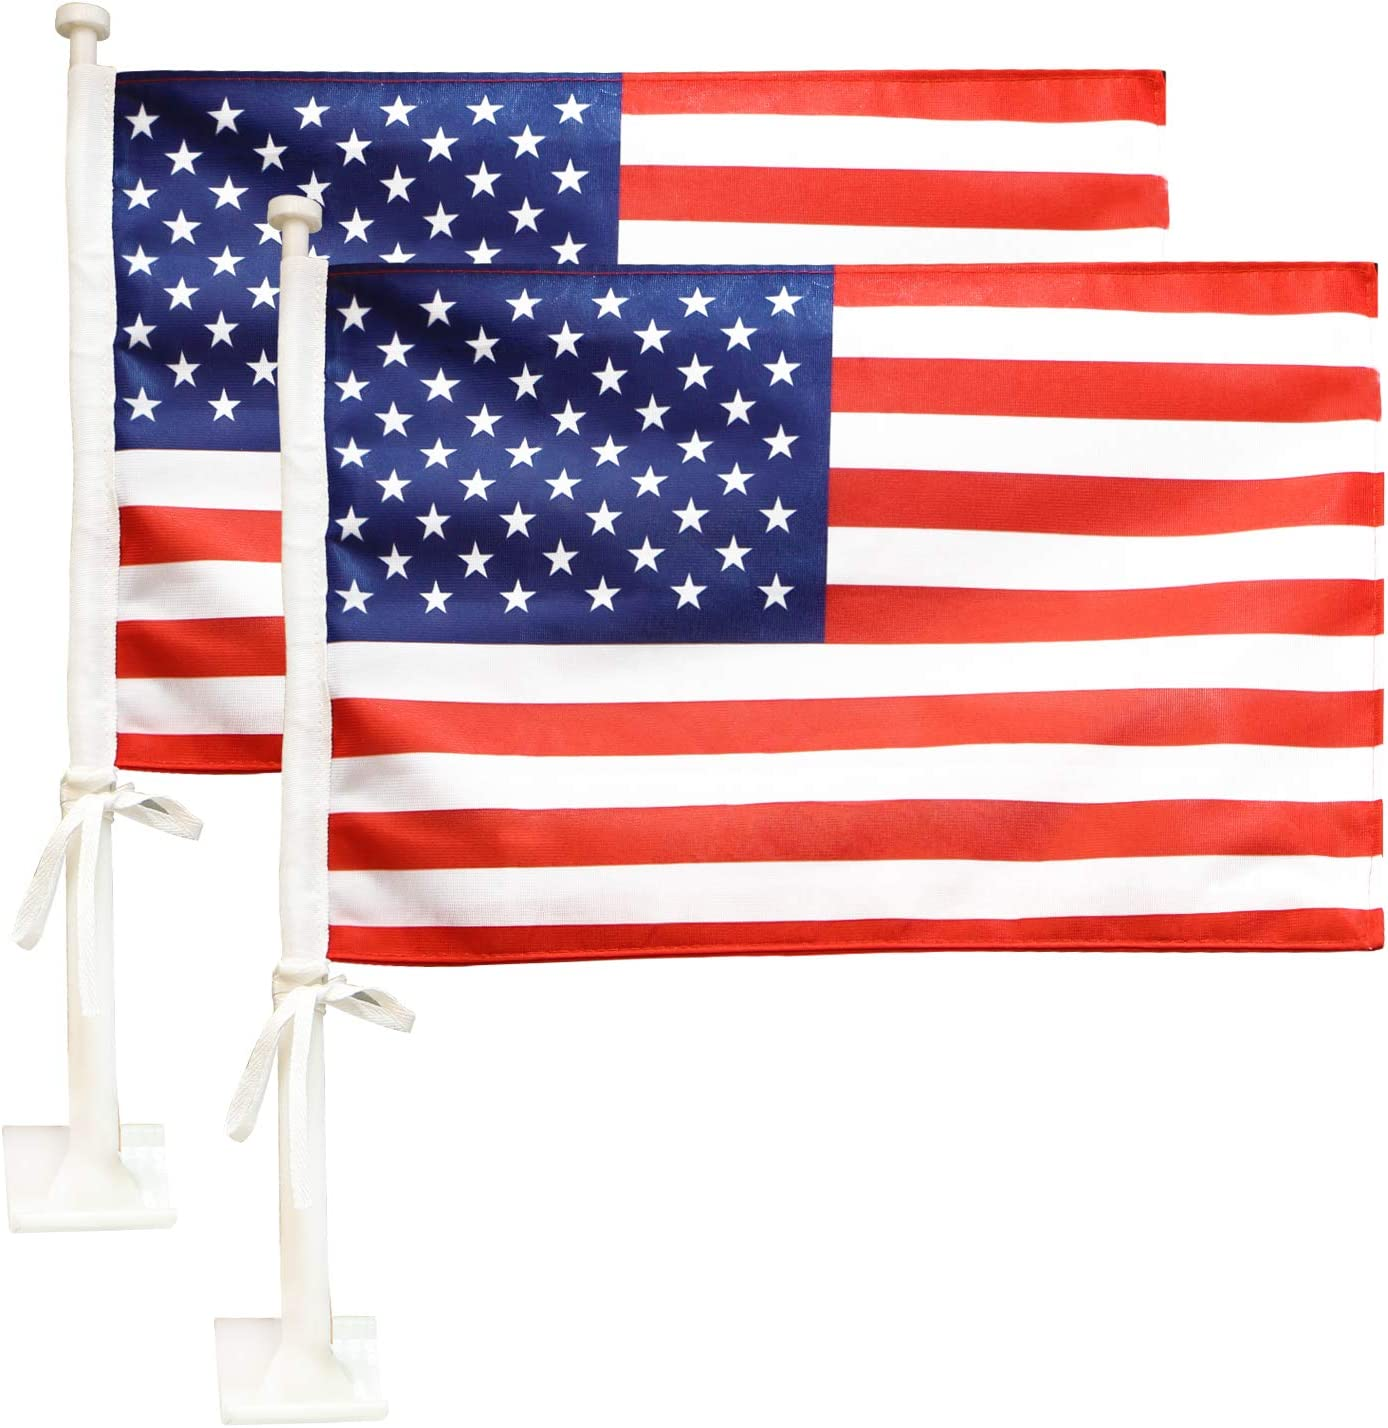 """Anley Car Flag with Flagpole Mount & American Flag - 17"""" x 11"""" Premium Double Sided USA Flag - 19"""" Flag Pole Fixed Window Clip Mount for Most Vehicle Window(2 Pack)"""